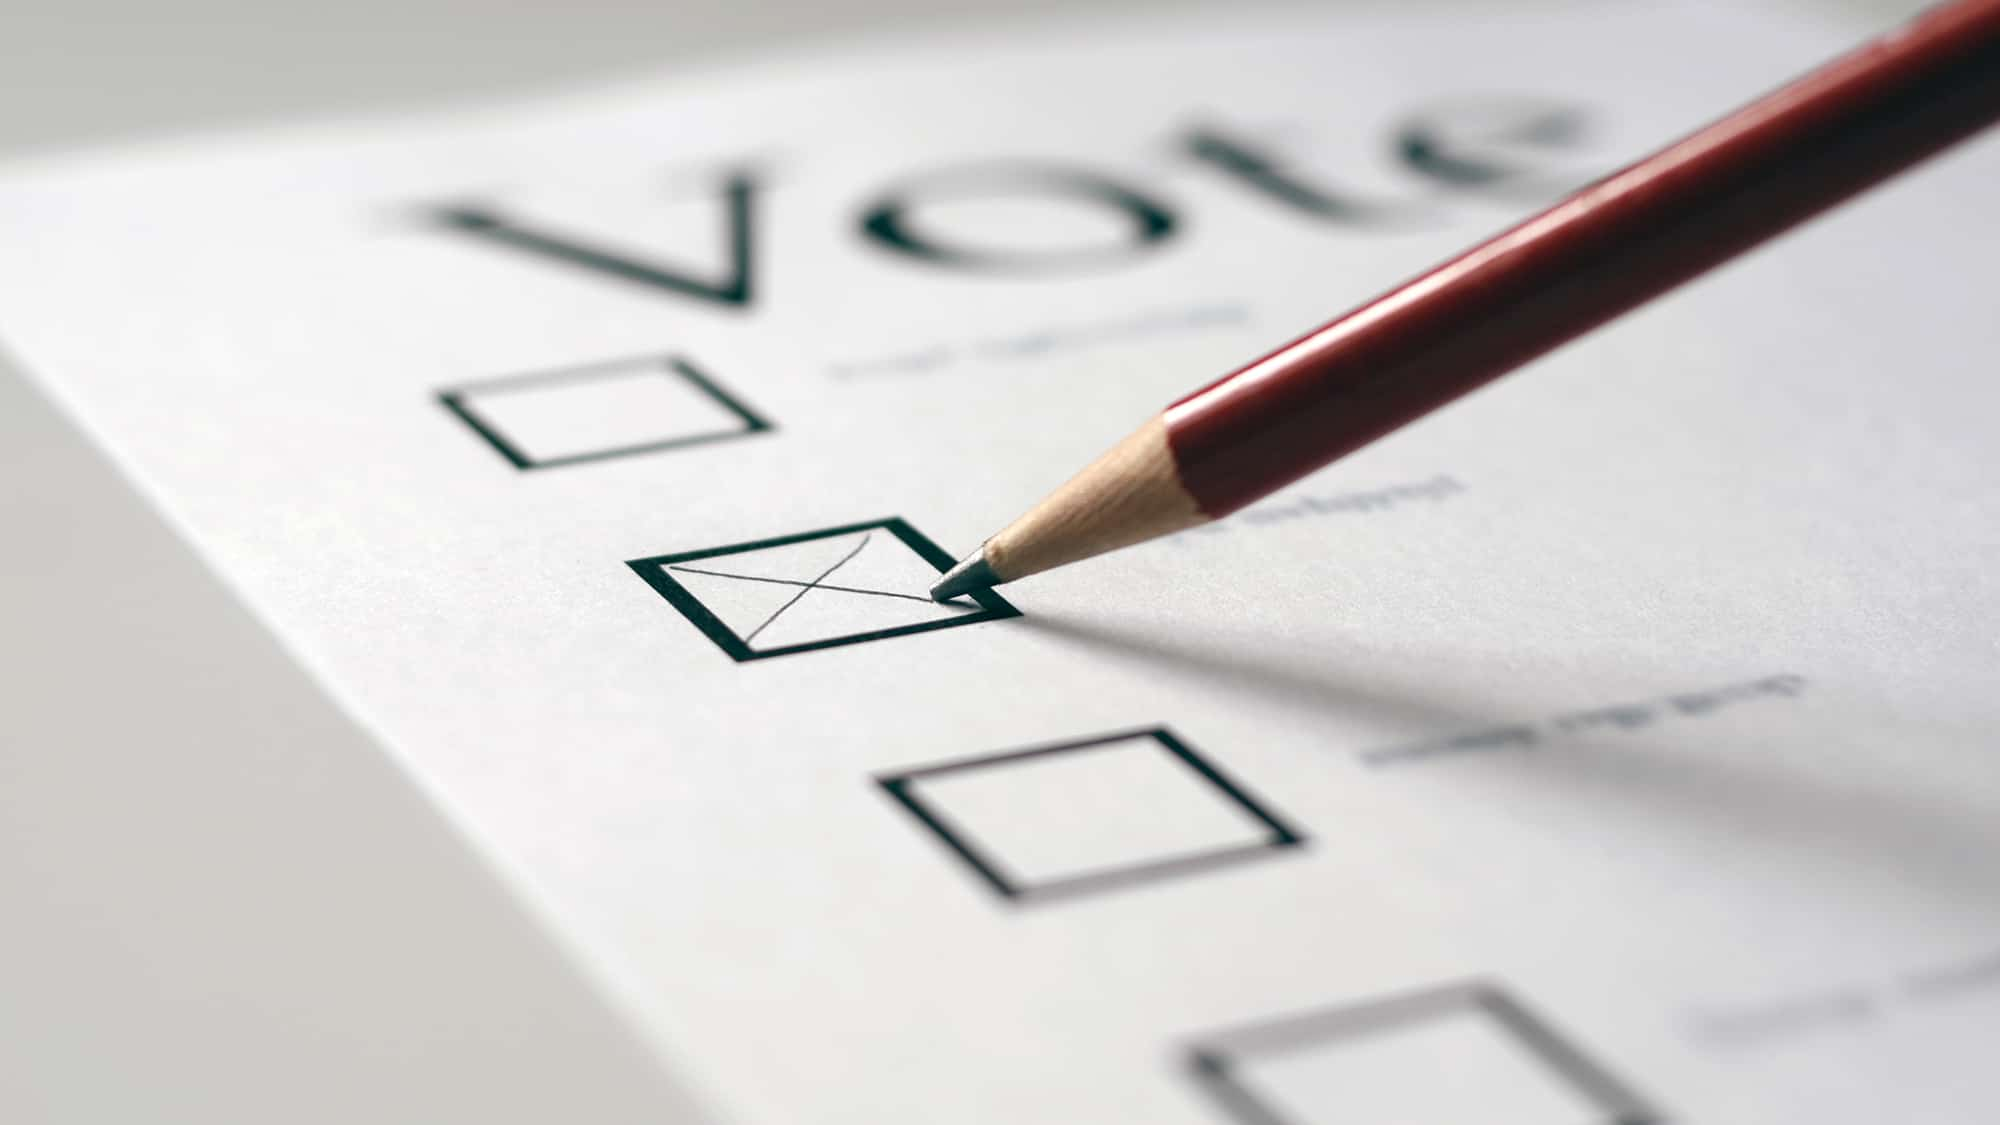 A voting card with pencil ticking a box